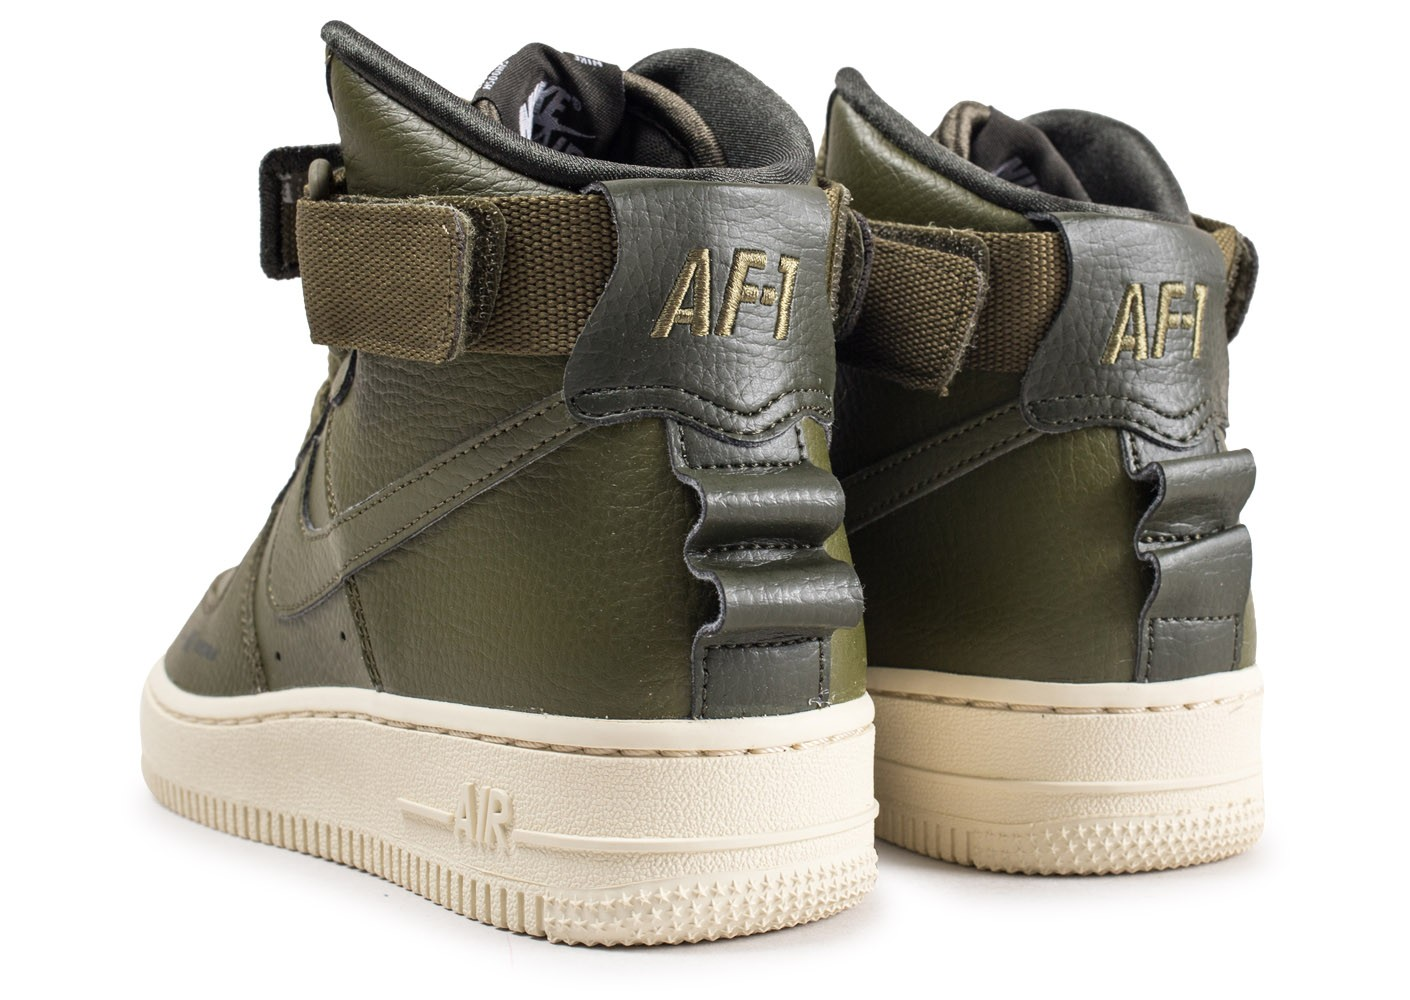 60b2a354f ... Chaussures Nike Air Force 1 High Utility Olive femme vue dessous ...